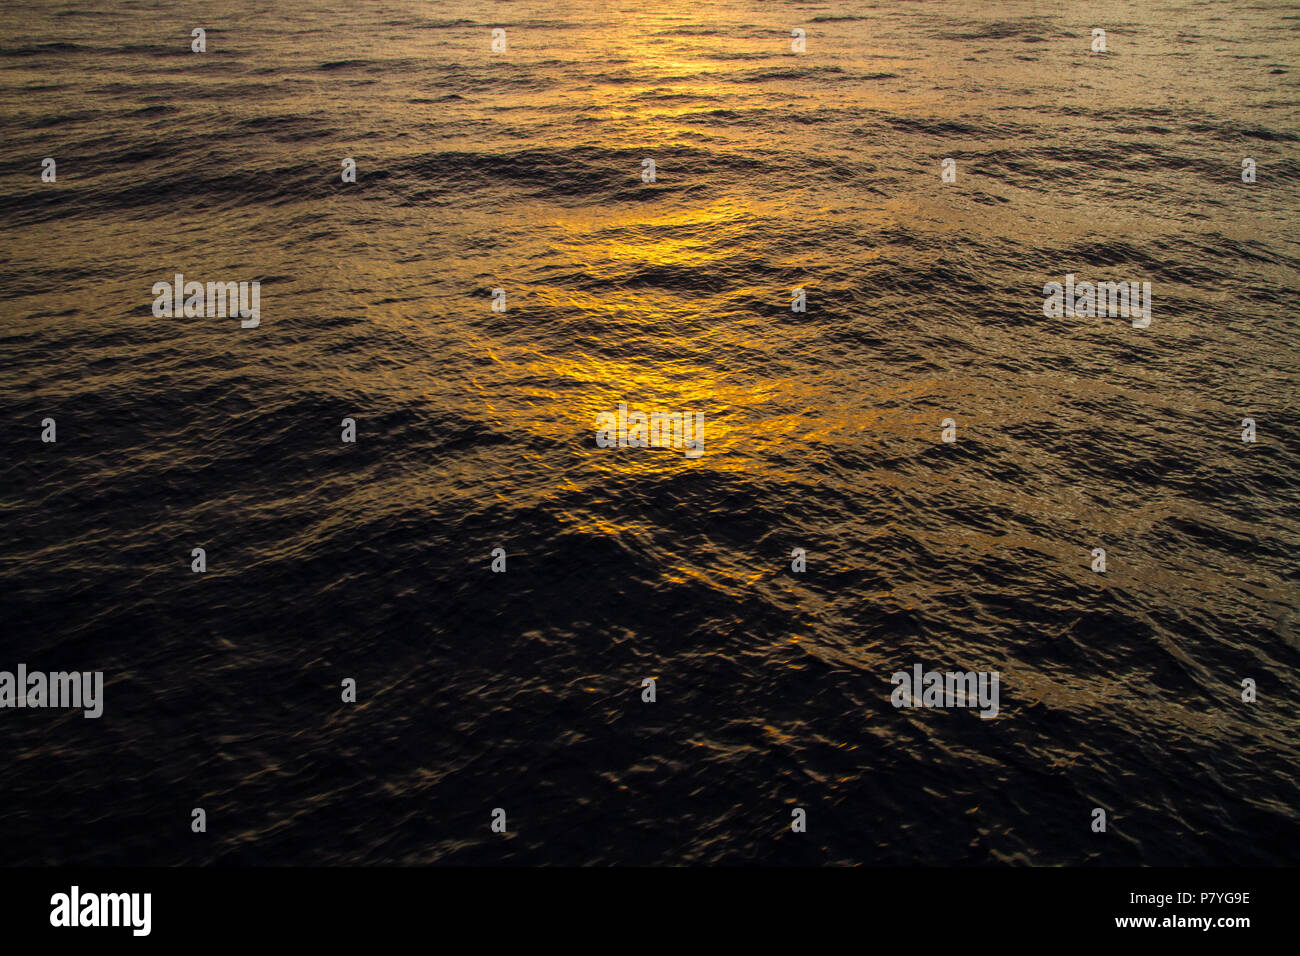 Advertising, Travel, Vacation and Holiday Concept - Sunsets lights reflections on the waves Stock Photo